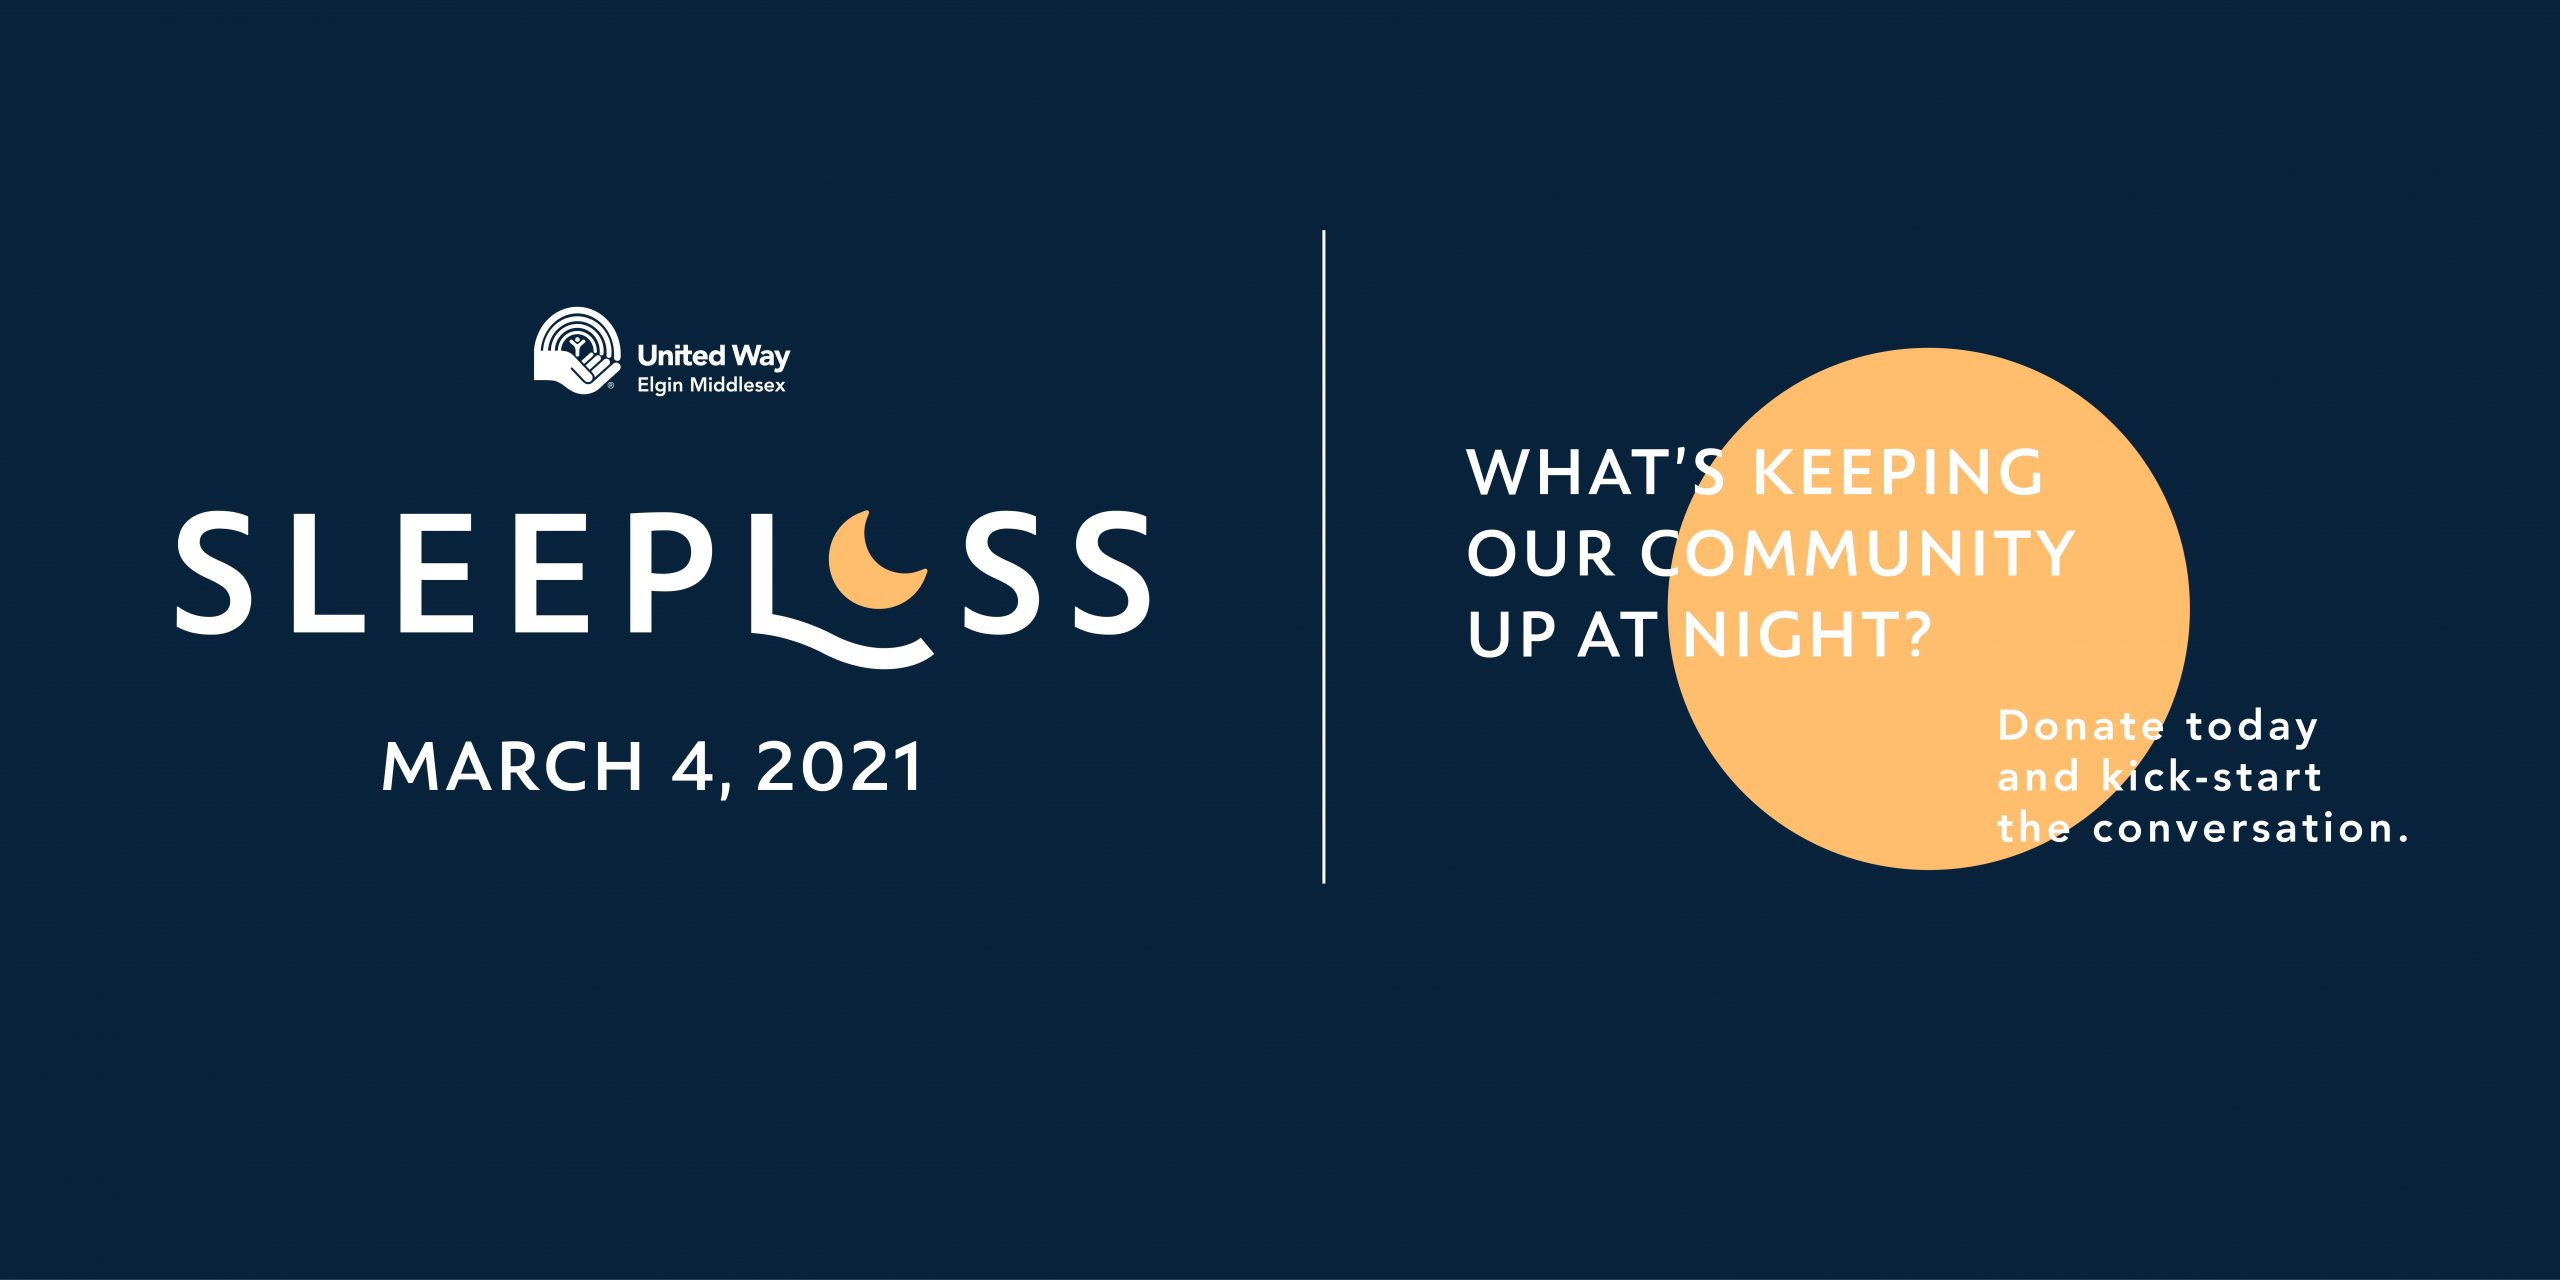 Sleepless event logo, March 4, 2021. What's keeping our community up at night? Donate today and kick-start the conversation.